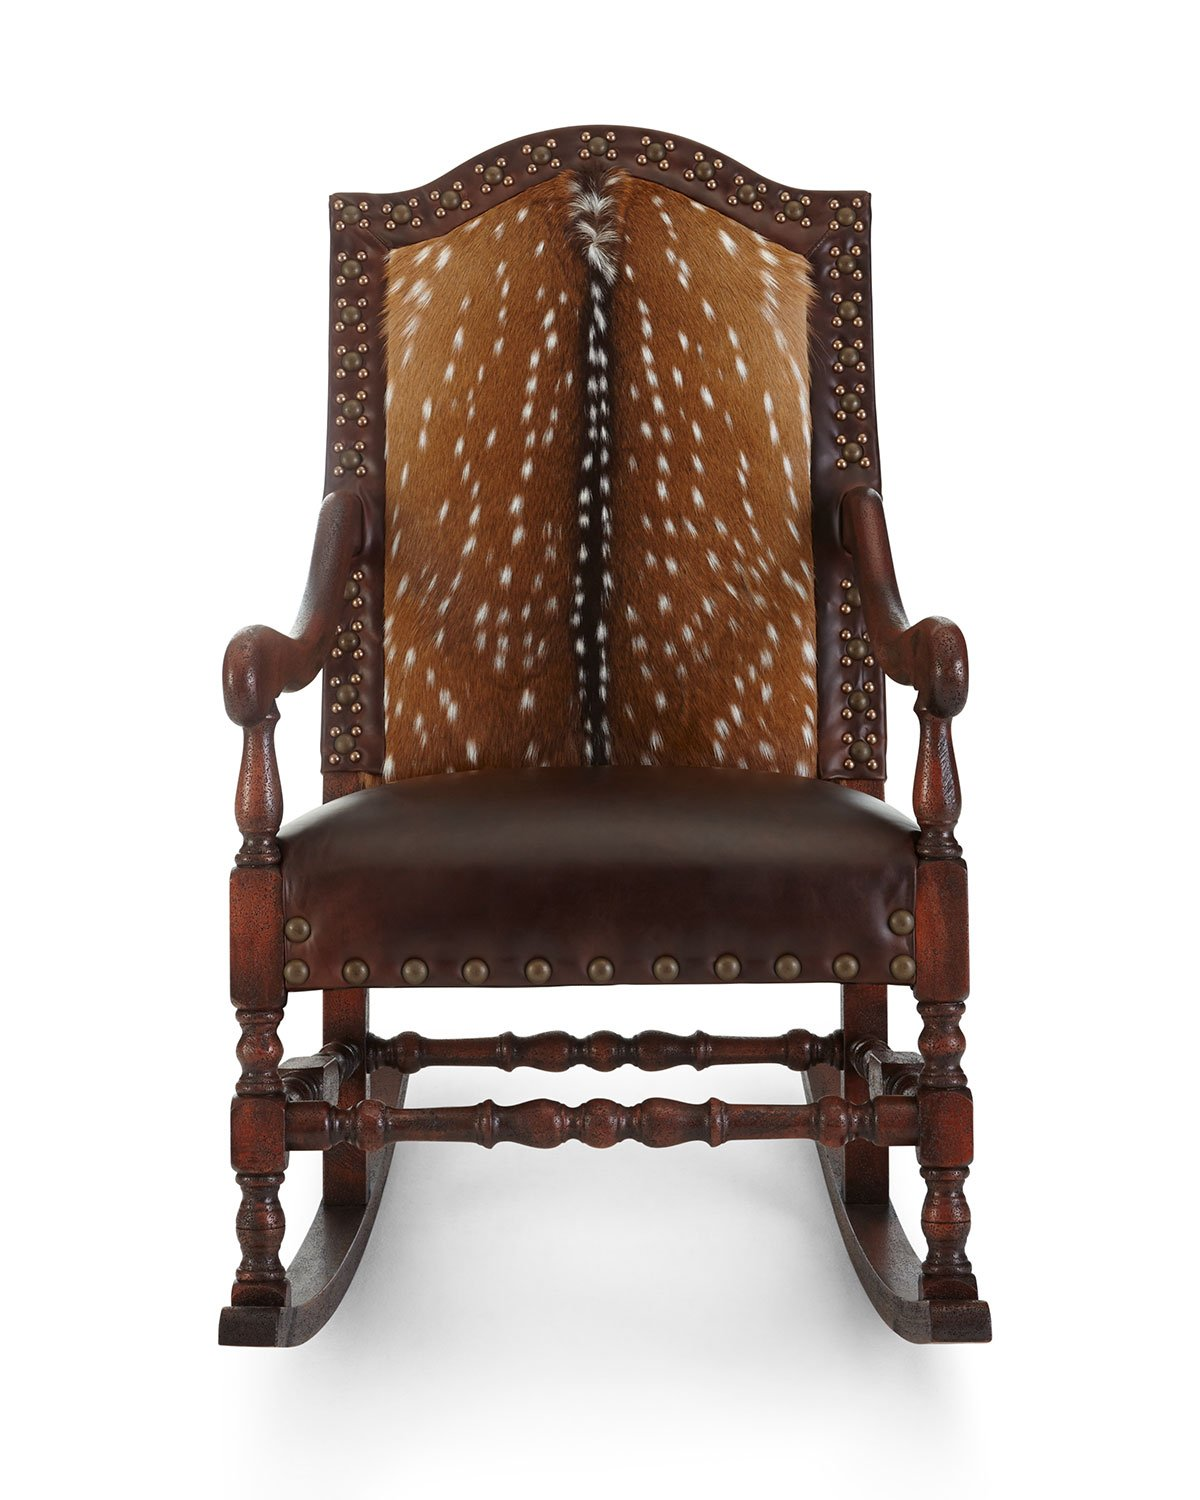 Axis Deer Rocking Chair - Old Hickory Tannery